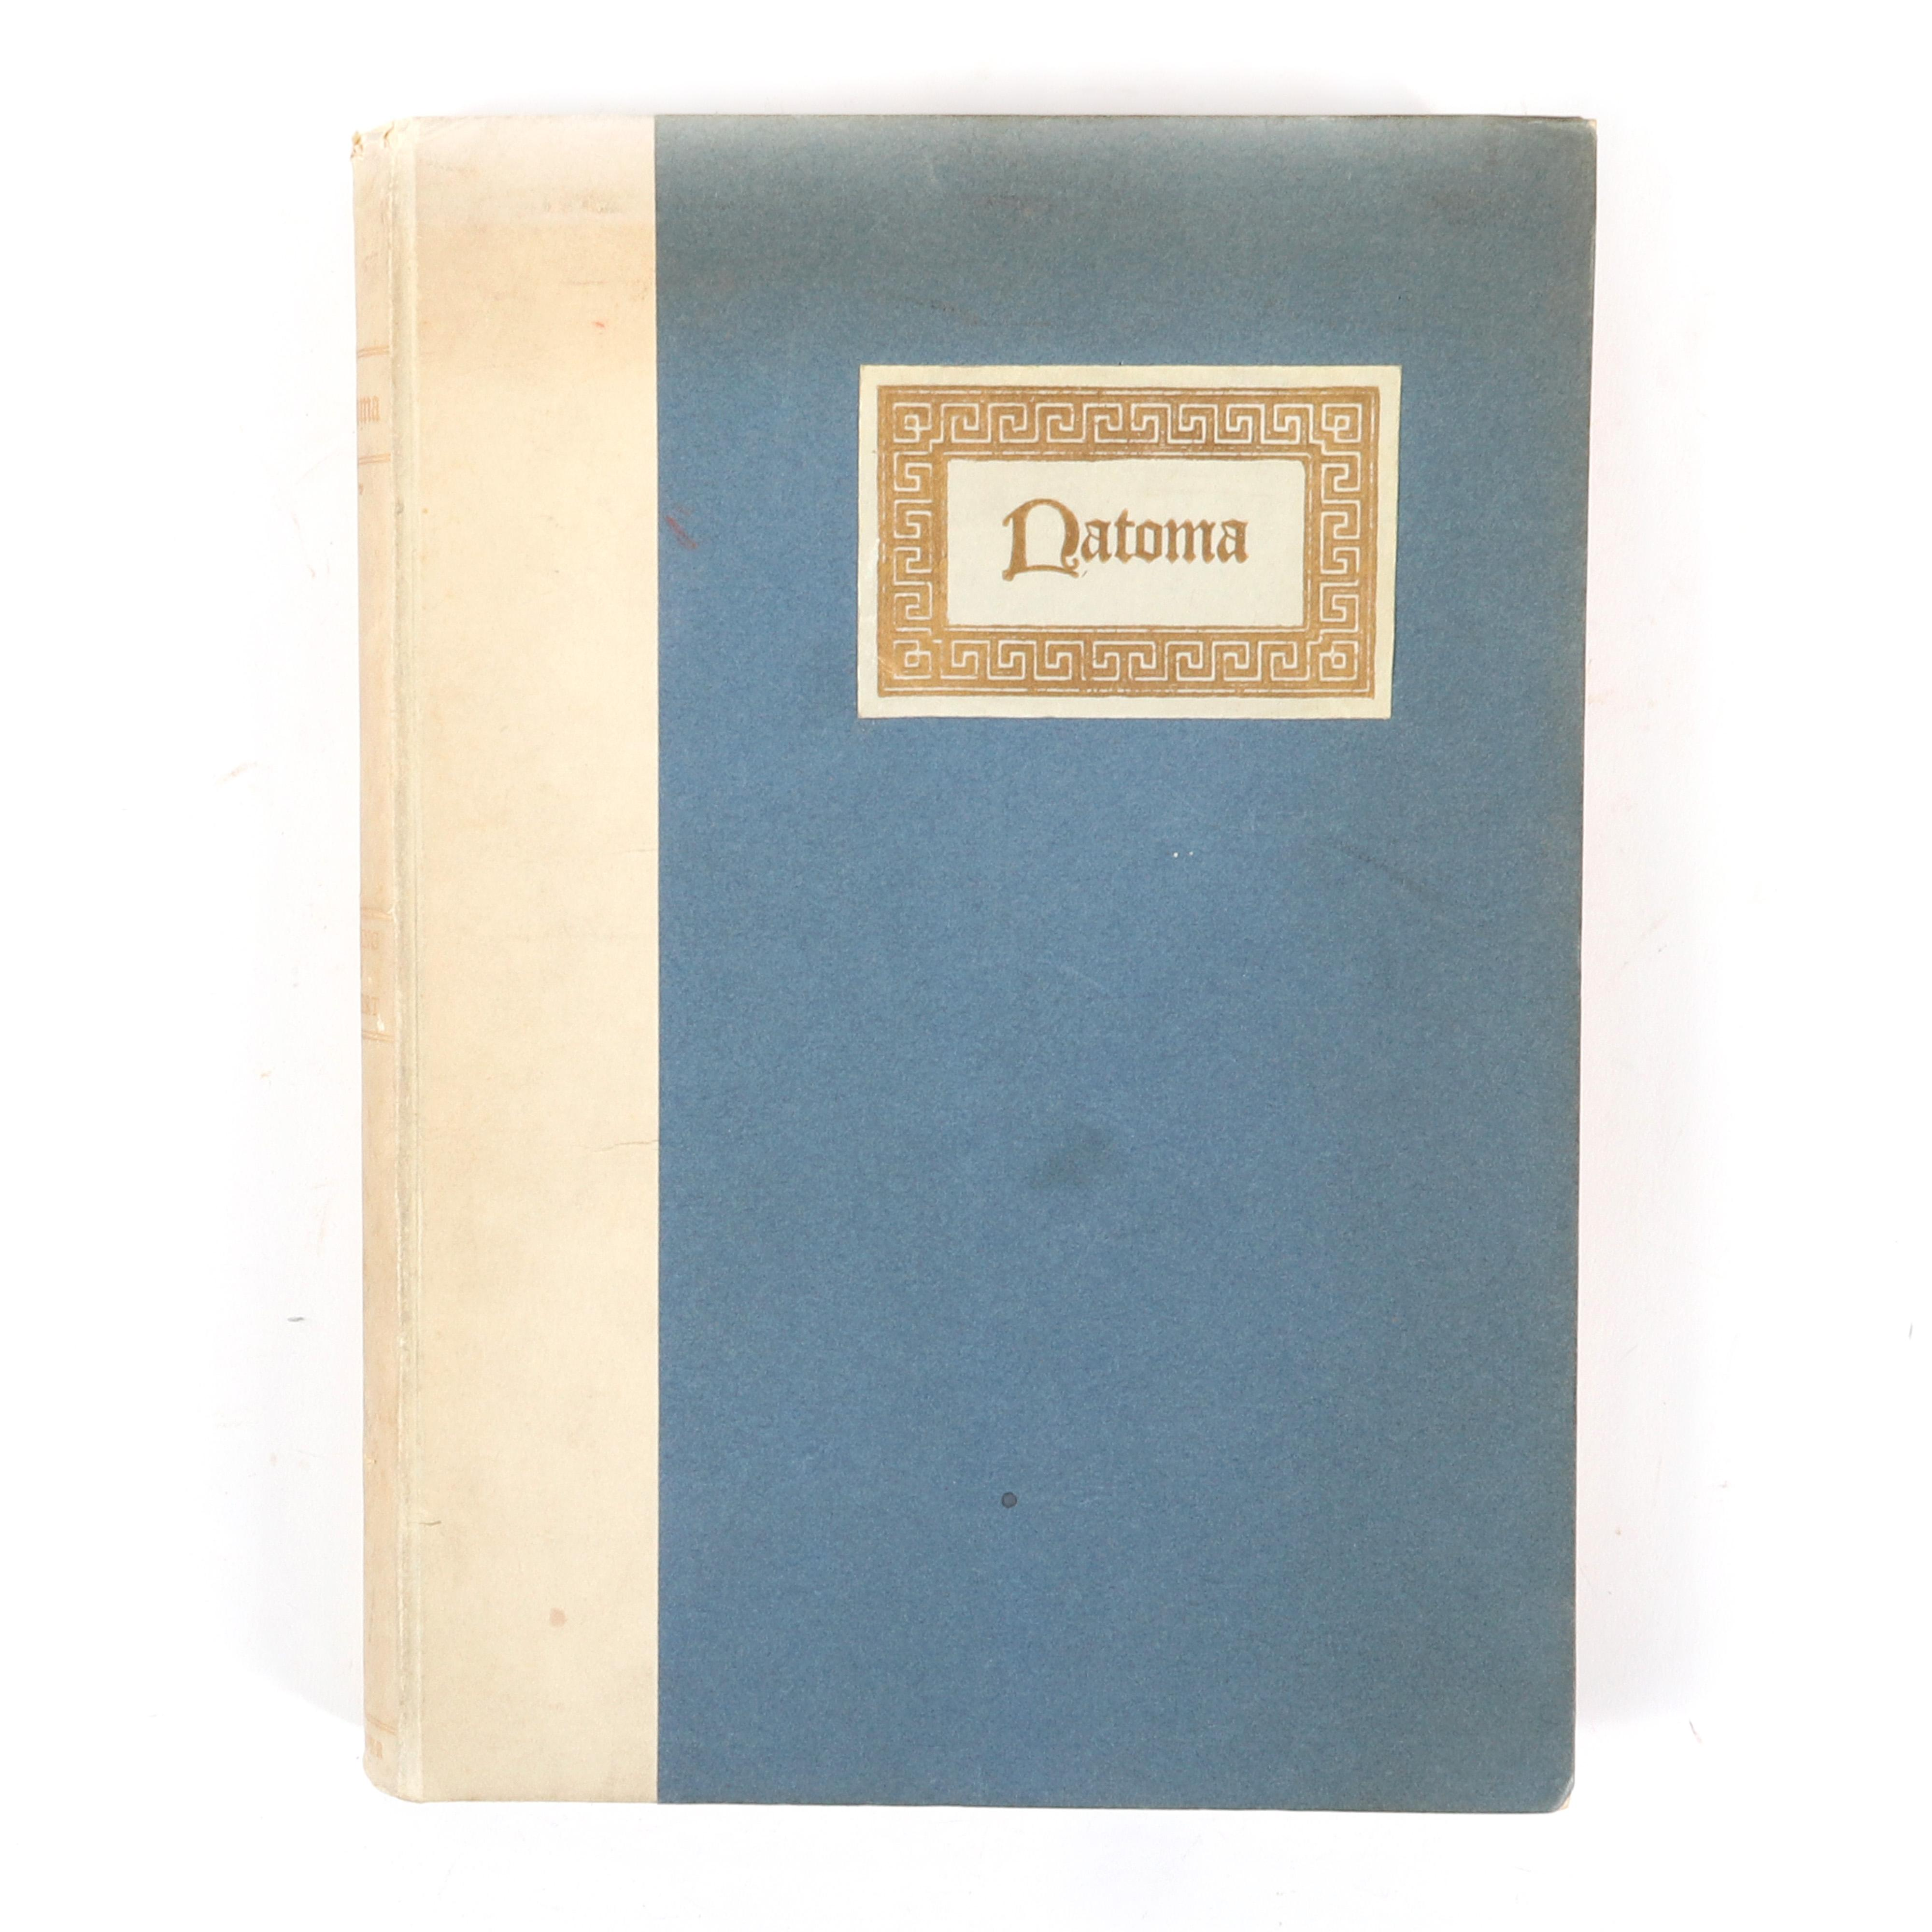 """Autographed book: Natoma, An Opera in Three Acts, The Book By Joseph D. Redding, The Music by Victor Herbert; New York; G Schirmer, 1910; No. 2 of special edition of 250 copies. 1 1/4""""H x 8""""W x 11""""D"""